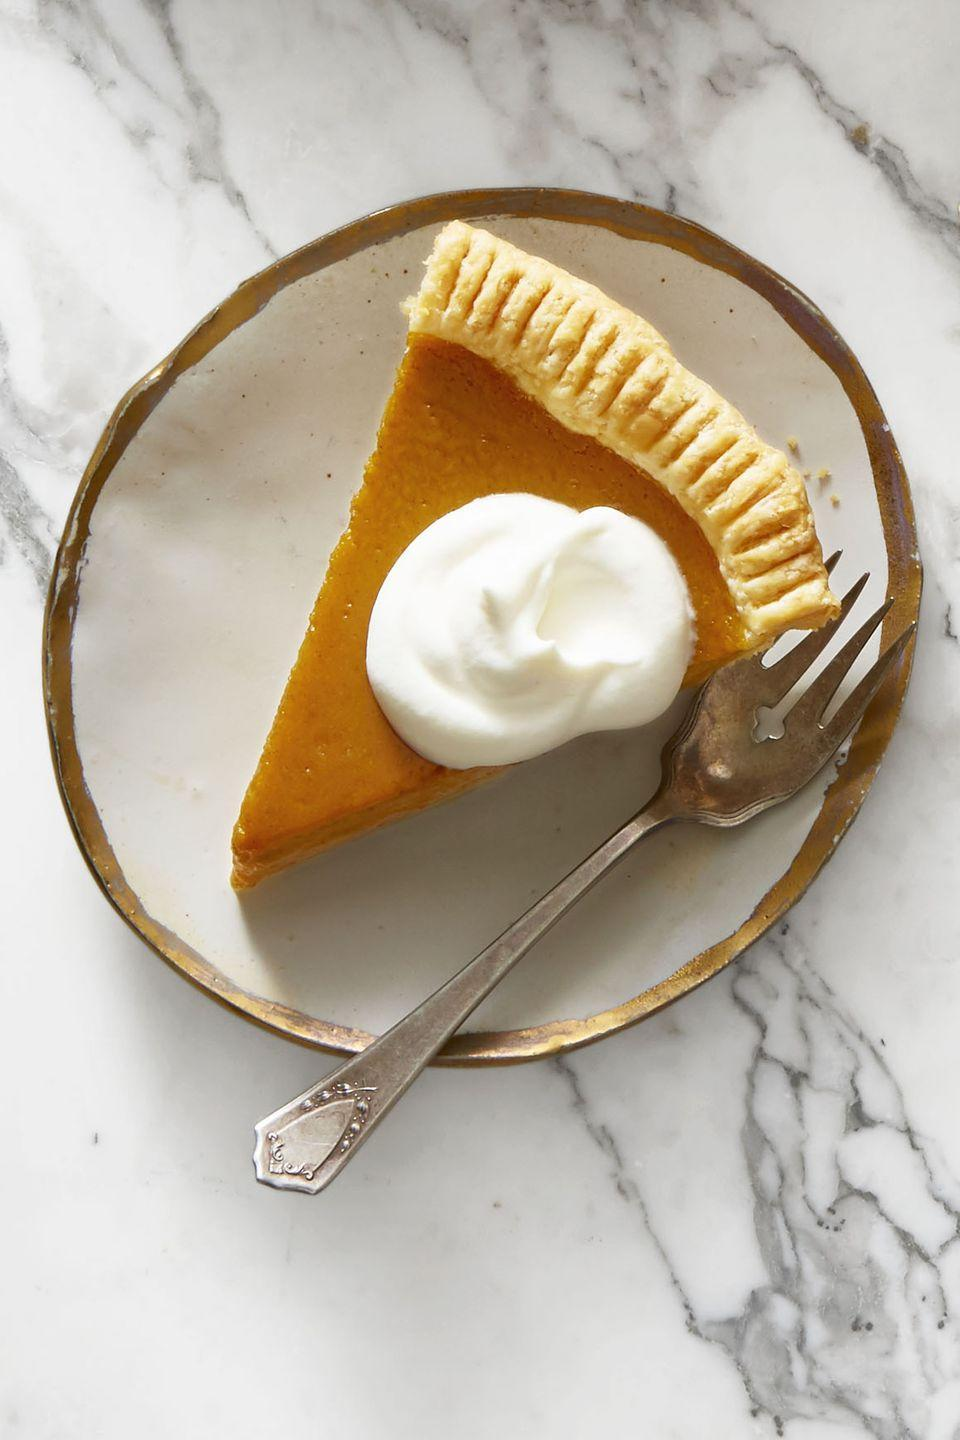 "<p>Pumpkin pie is Thanksgiving's secret weapon — and we're going to go ahead and say it: This is the best (and only) pumpkin pie recipe you'll need this fall.</p><p><em><a href=""https://www.goodhousekeeping.com/food-recipes/dessert/a46627/pumpkin-pie-with-maple-whipped-cream-recipe/"" rel=""nofollow noopener"" target=""_blank"" data-ylk=""slk:Get the recipe for Pumpkin Pie with Maple Whipped Cream »"" class=""link rapid-noclick-resp"">Get the recipe for Pumpkin Pie with Maple Whipped Cream »</a></em></p><p><strong>RELATED: </strong><a href=""https://www.goodhousekeeping.com/food-recipes/g3986/pumpkin-pie-recipes/"" rel=""nofollow noopener"" target=""_blank"" data-ylk=""slk:20 Best Pumpkin Pie Recipes to Finish Your Holiday Meal Strong"" class=""link rapid-noclick-resp"">20 Best Pumpkin Pie Recipes to Finish Your Holiday Meal Strong</a></p>"